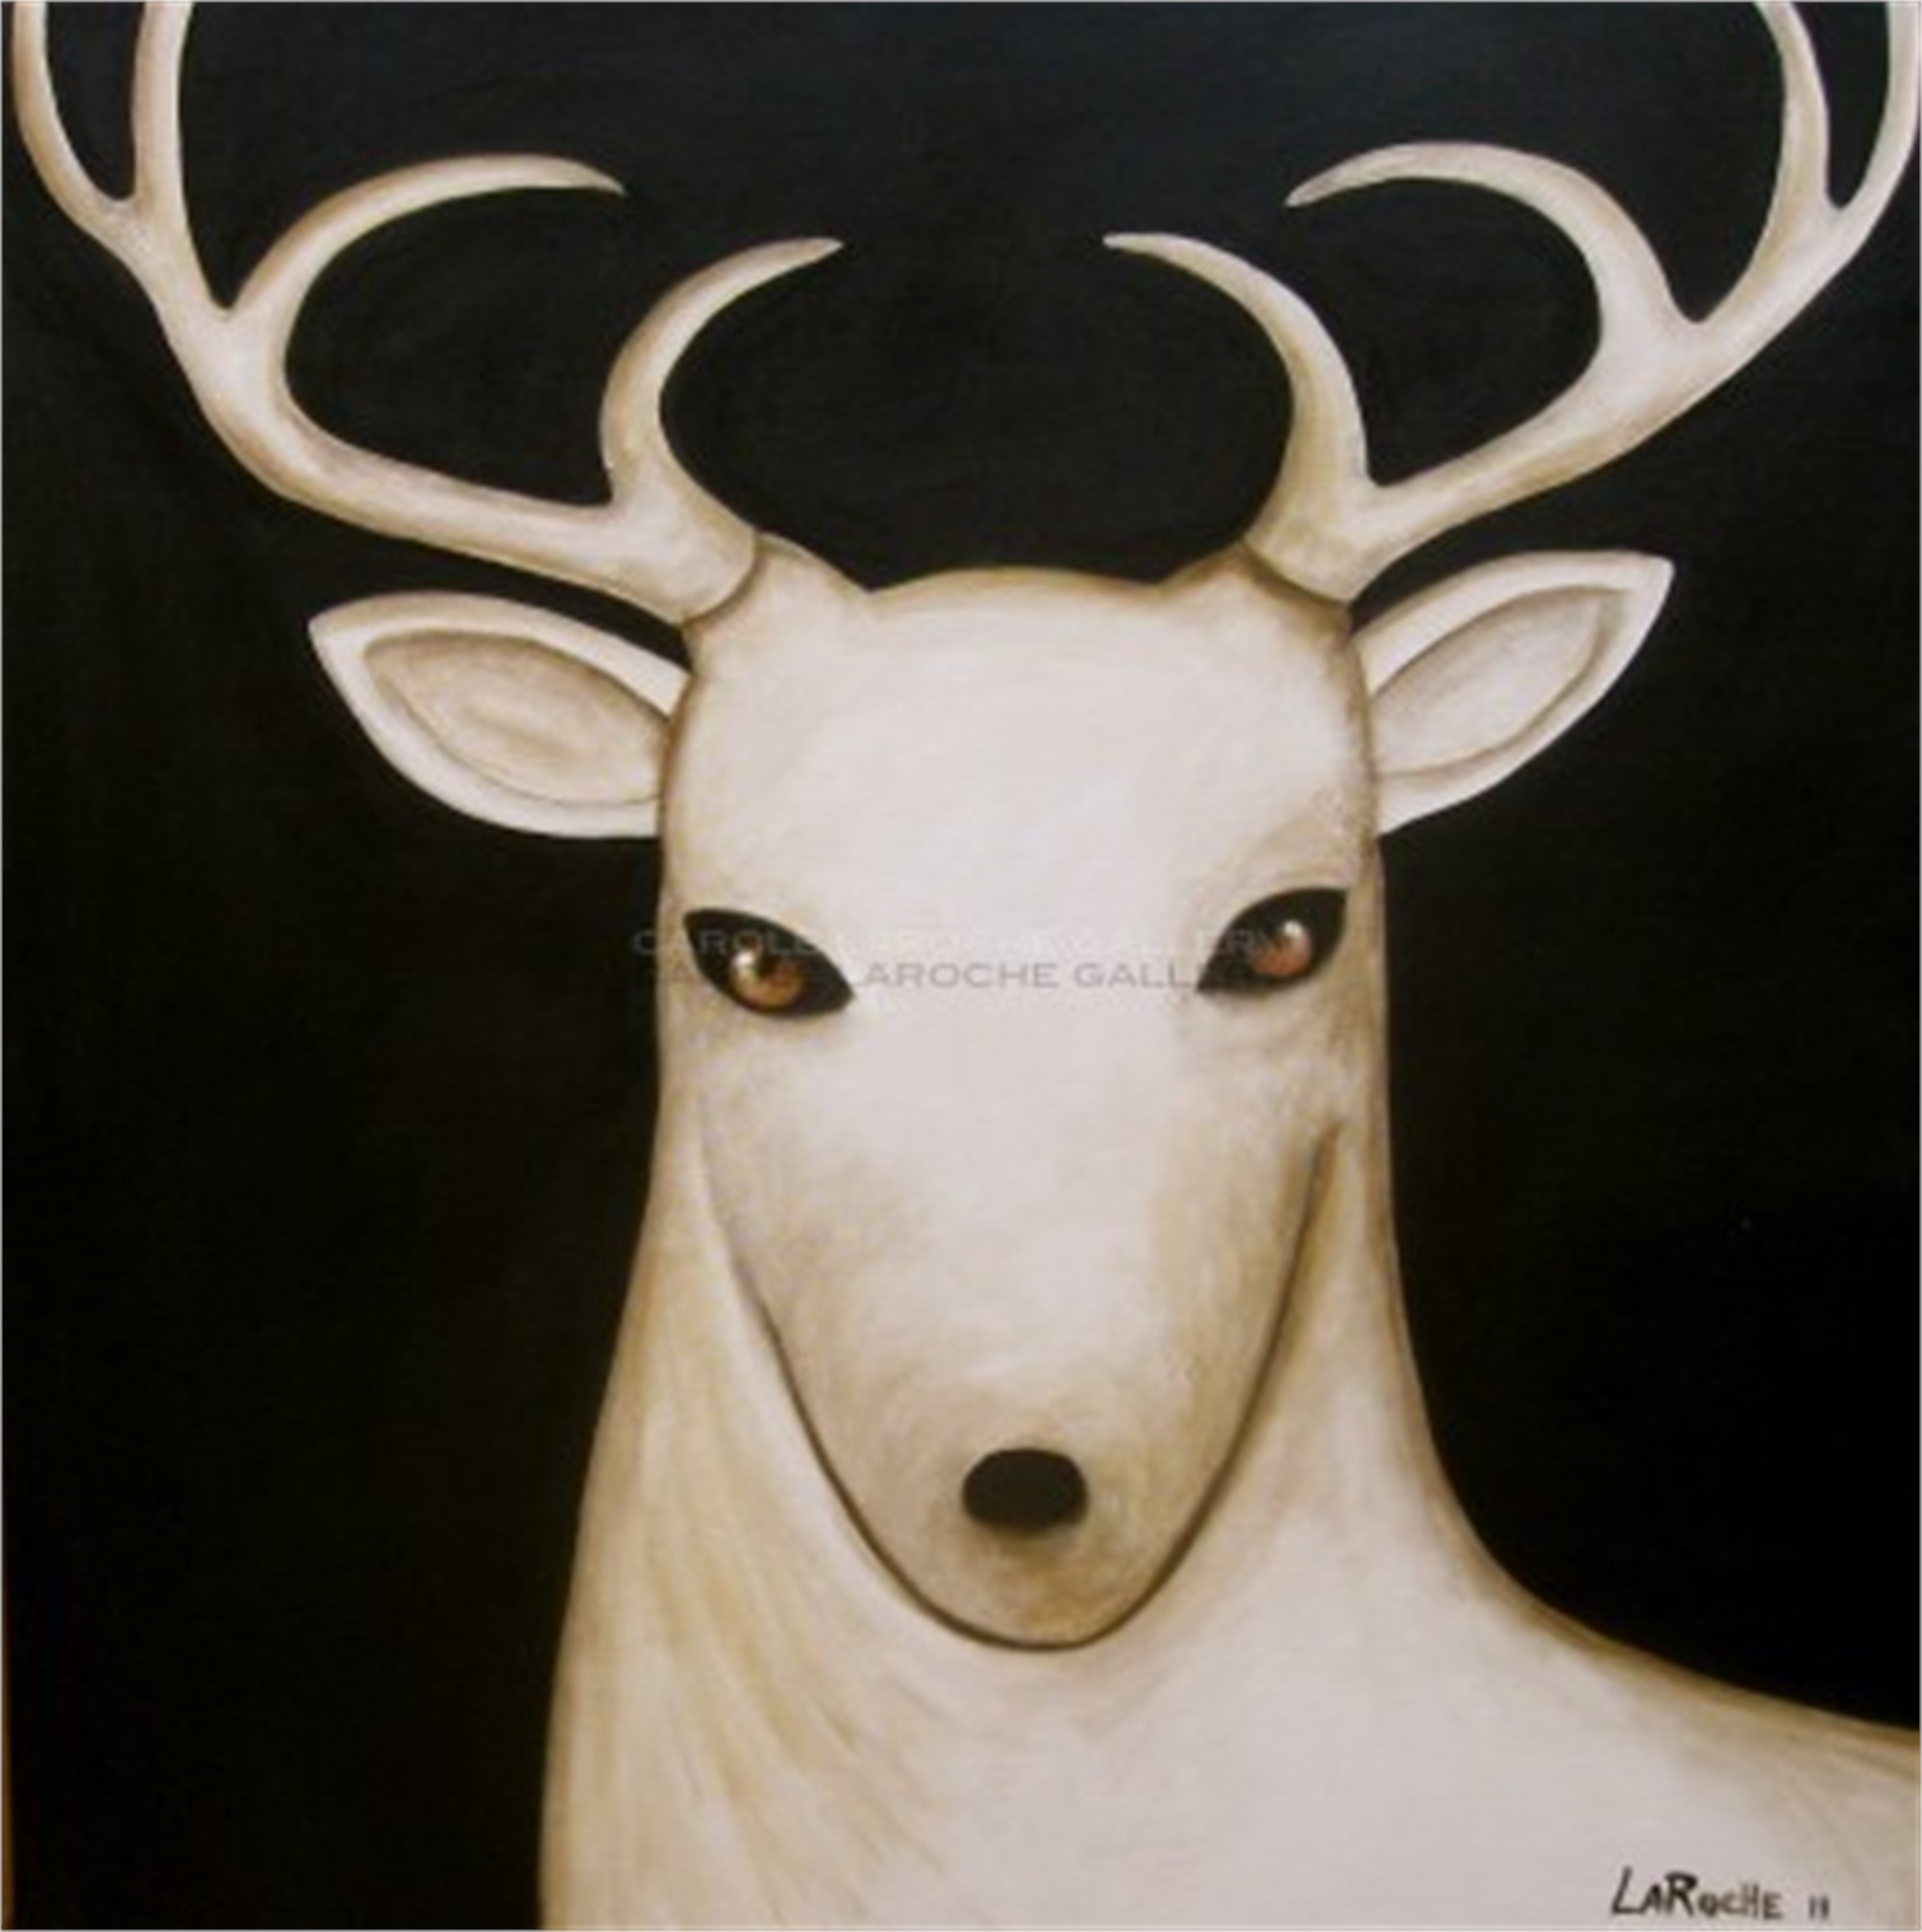 "NIGHT SKY/SINGLE WHITE DEER giclee on canvas Large 40""x40"" $2800 or Medium 30""x30"" $2200 by Carole LaRoche"